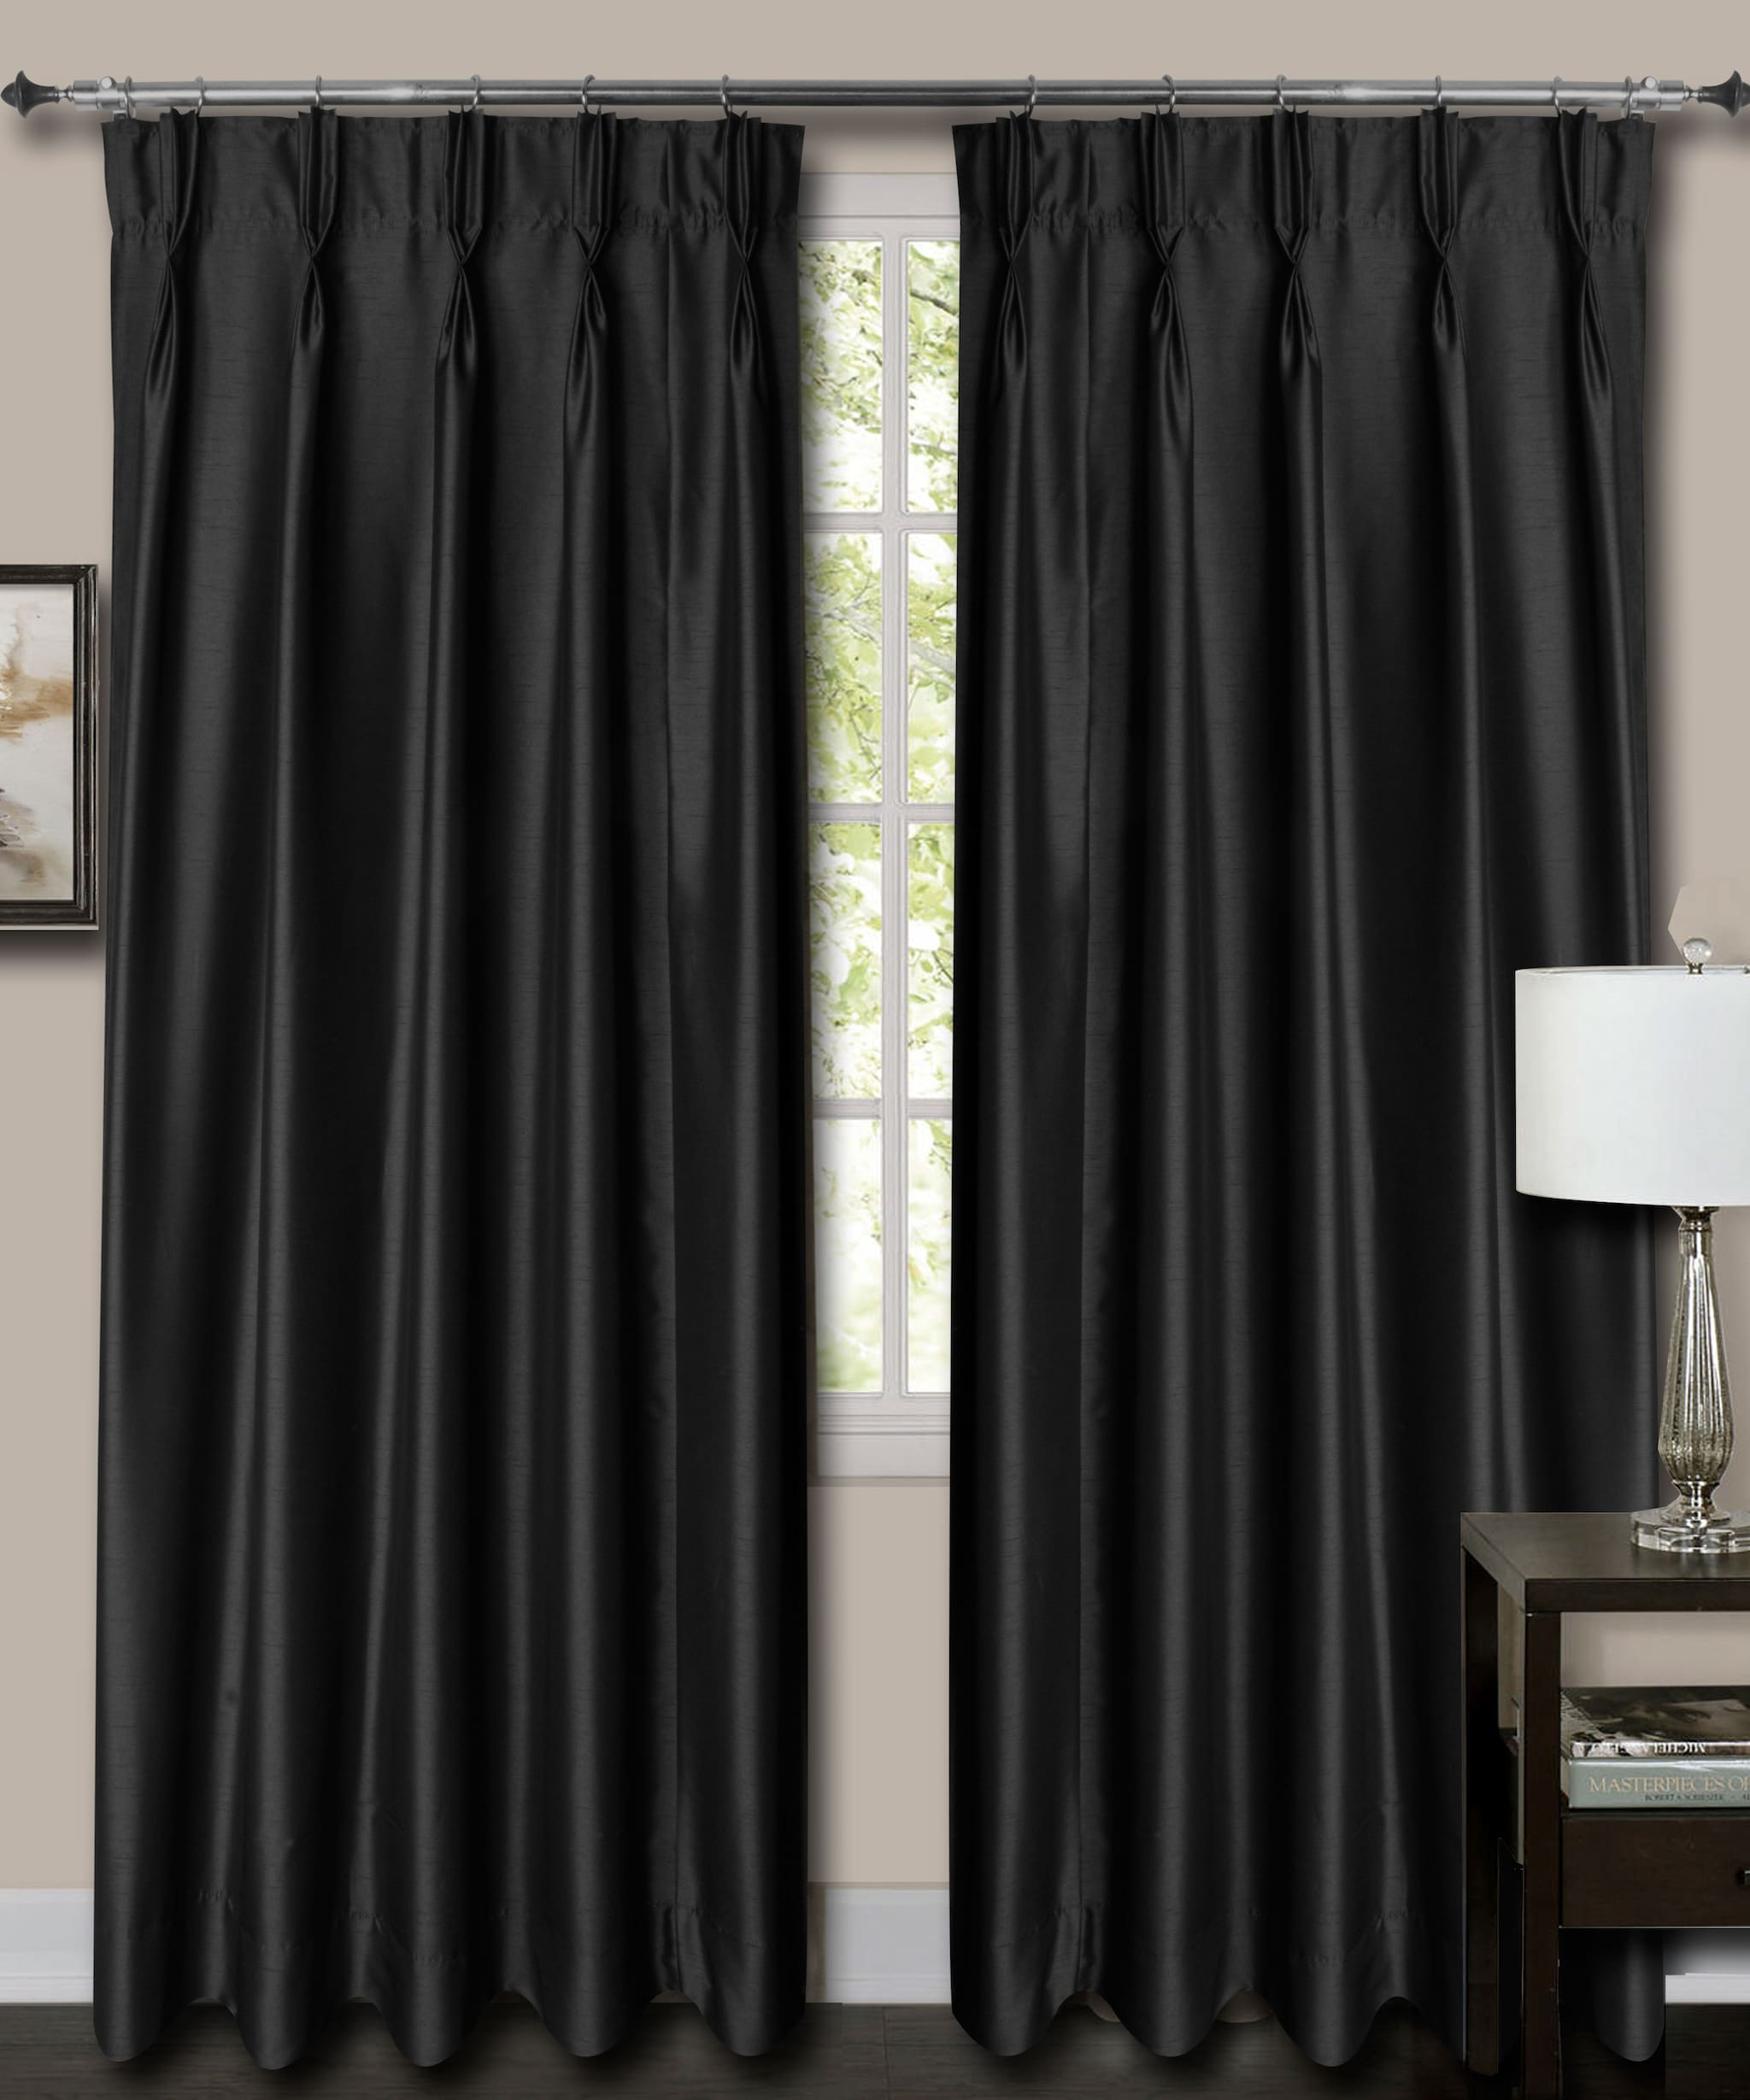 "French Pleat Top Black Faux Silk Dupioni Curtains. (52"" Wide,8 Feet Long,Blackout Lining)"